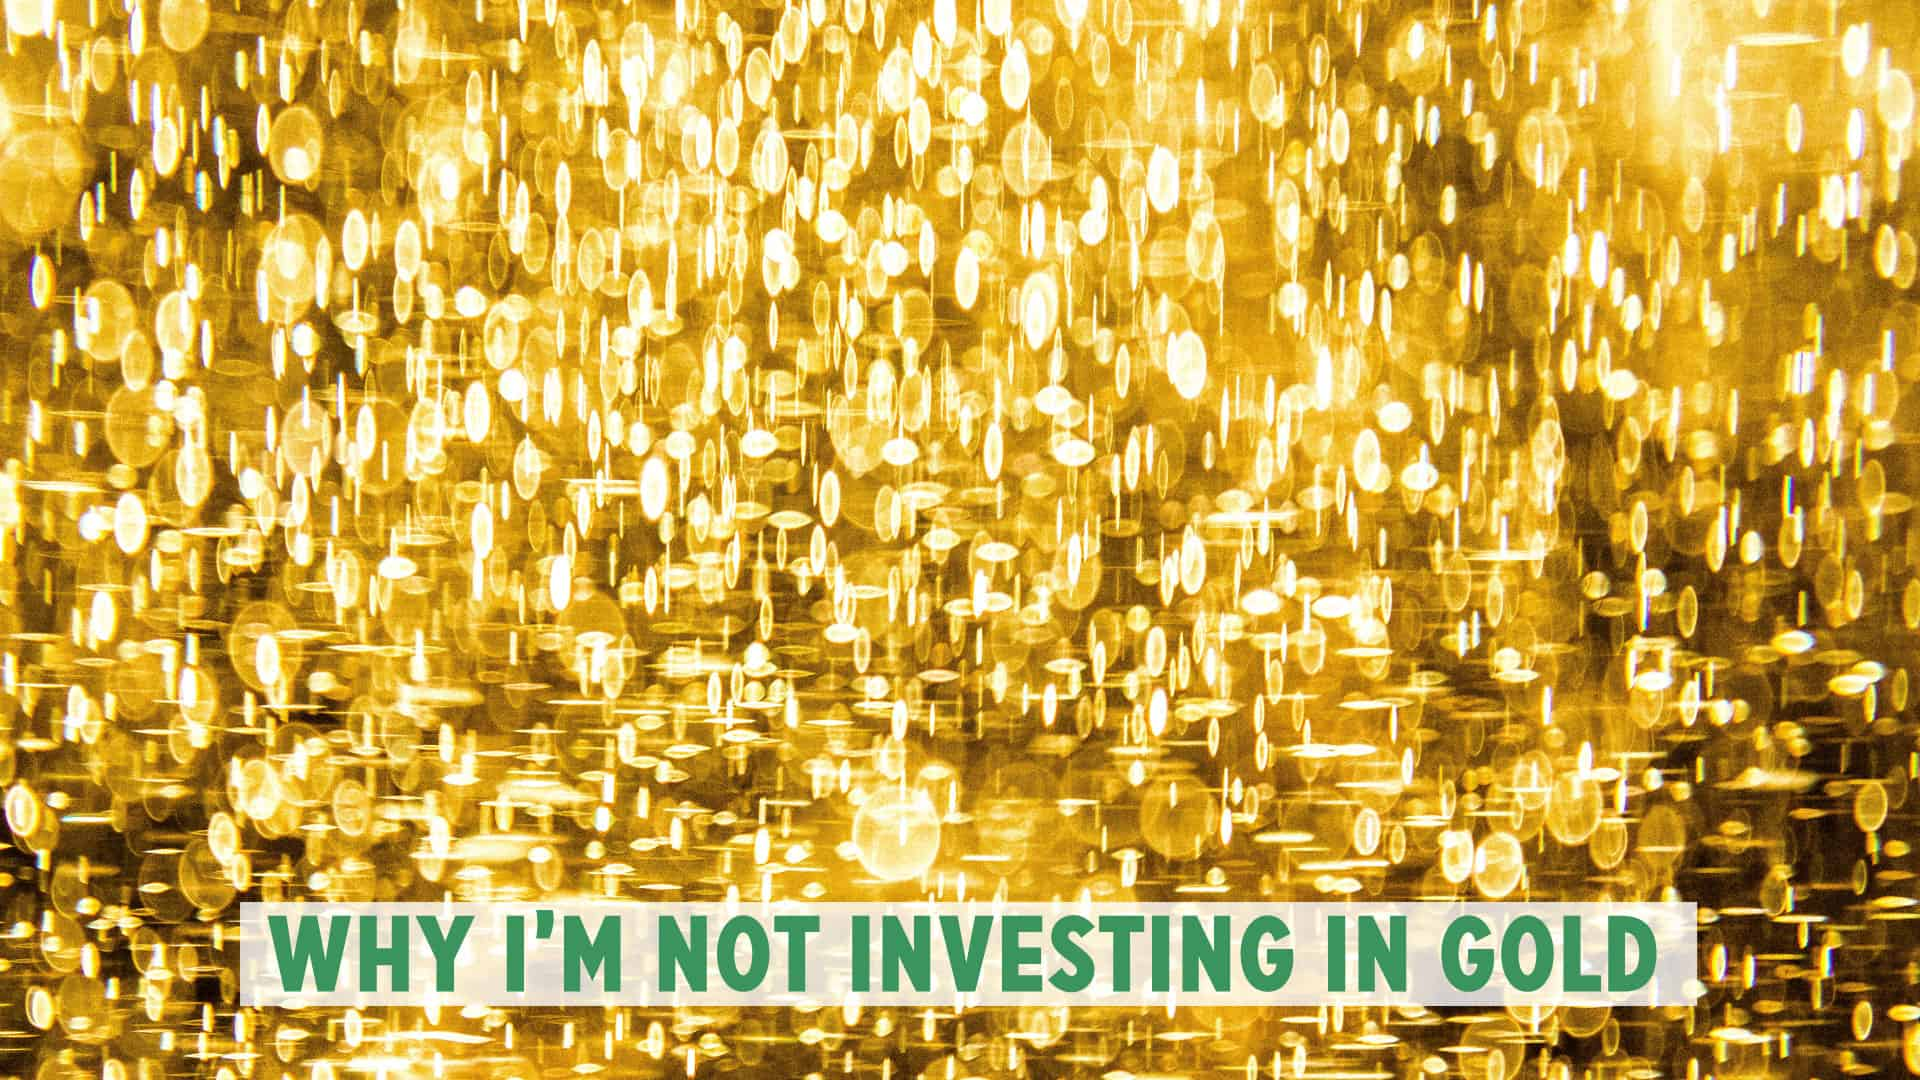 All that glitters: Why I'm not investing in gold